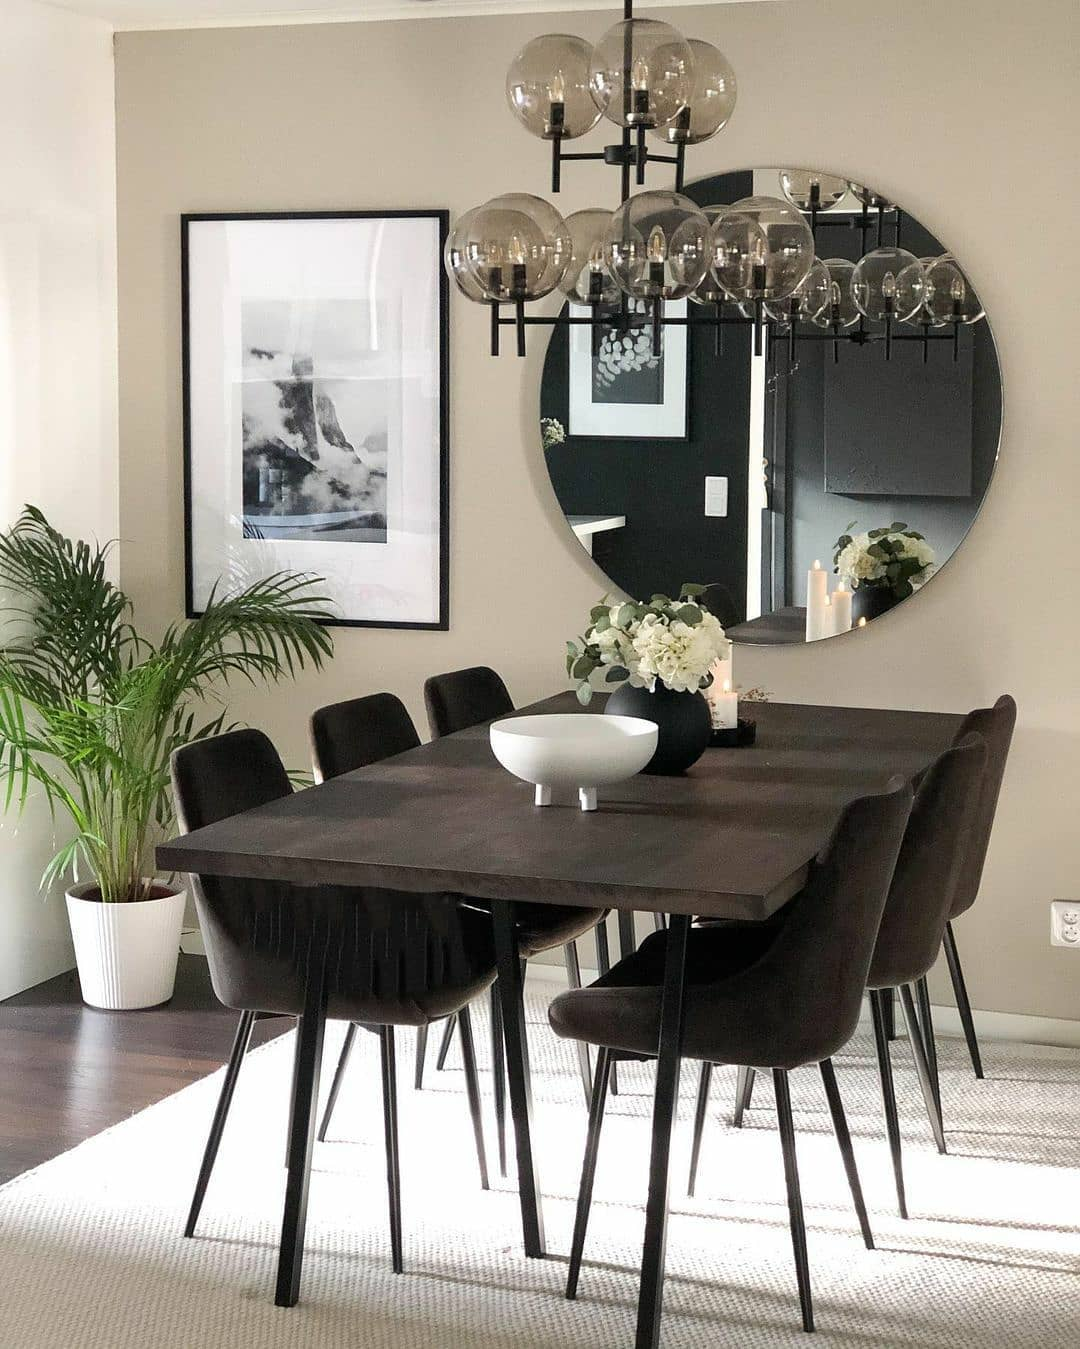 Do Living Room and Dining Room Have To Match?